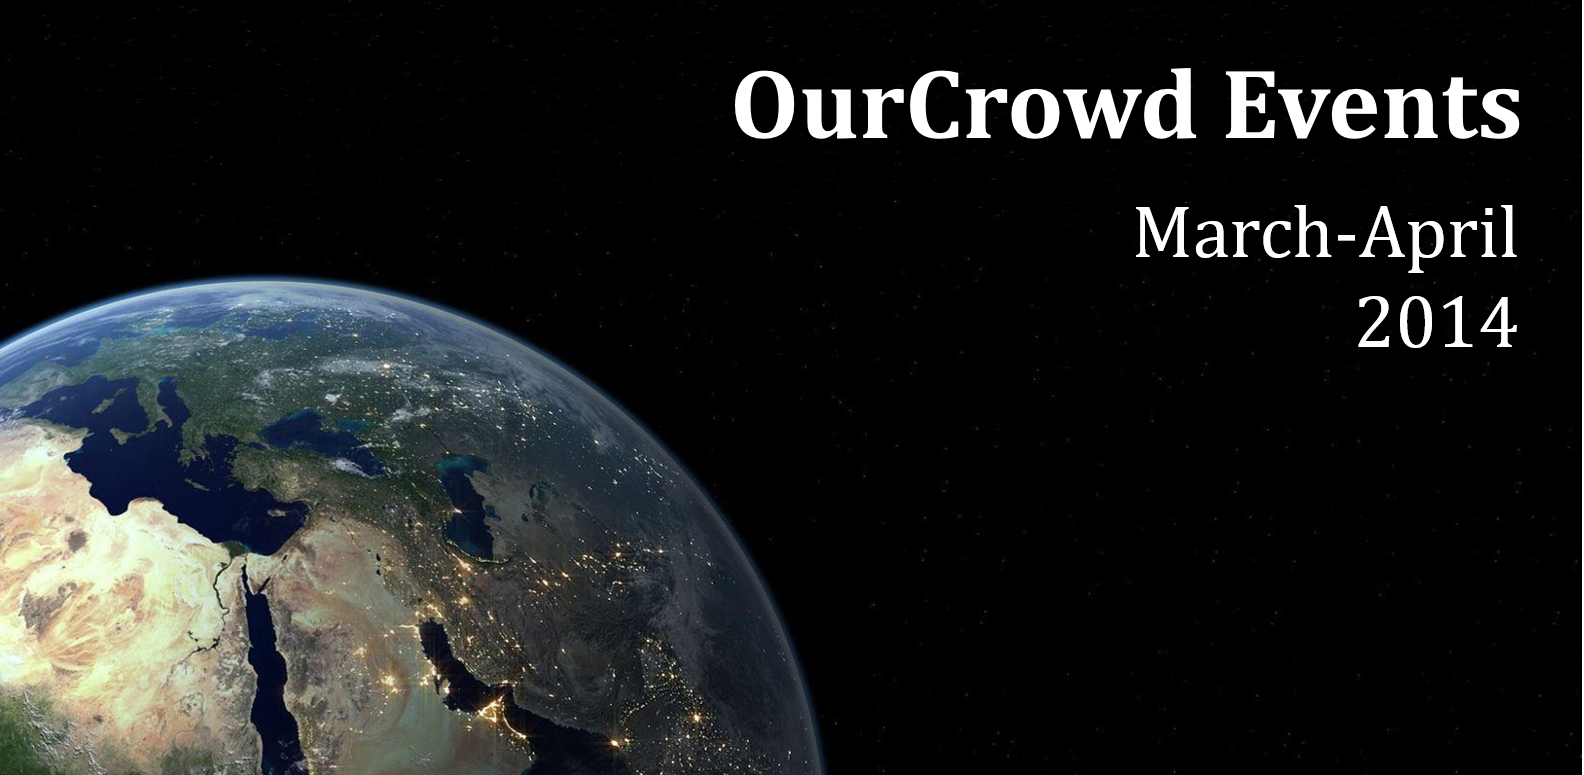 OurCrowd Events March-April